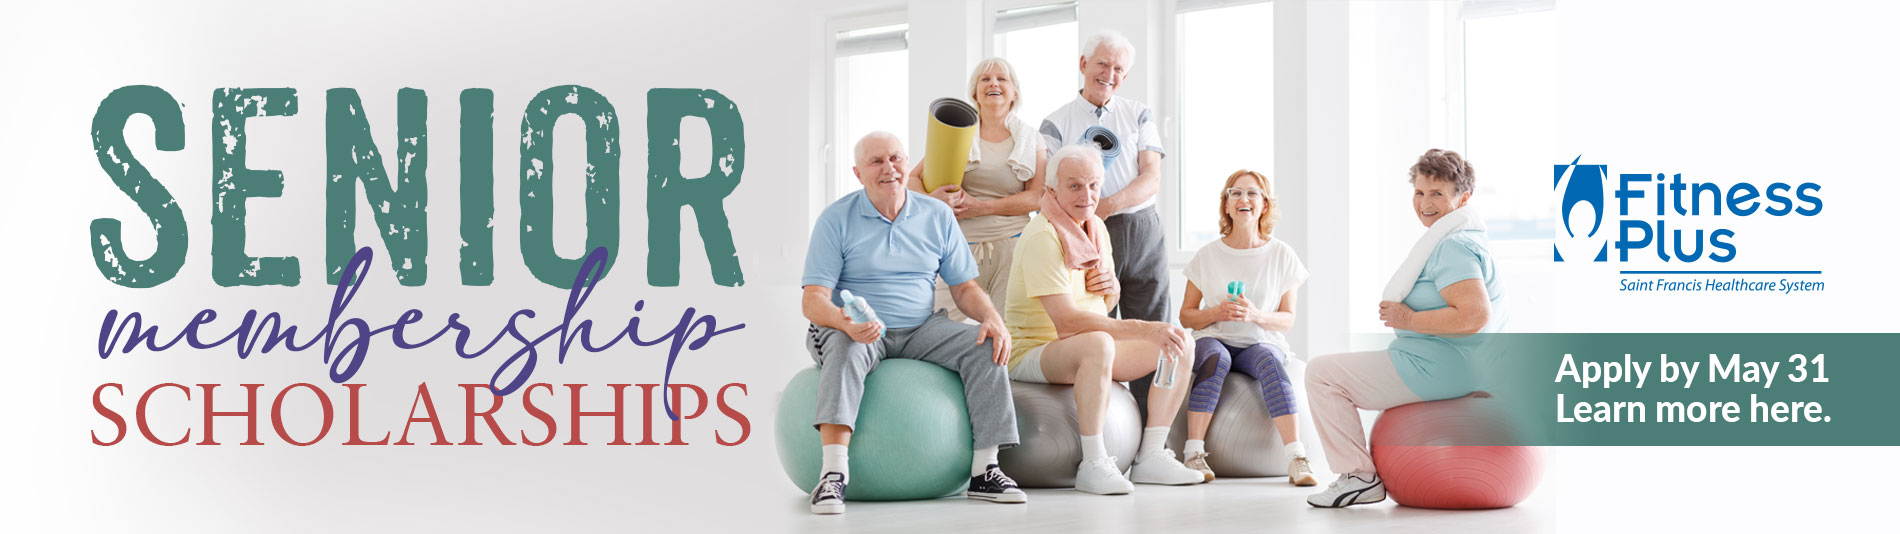 Fitness Plus Senior Member Scholarships. Apply by May 31. Click to learn more.